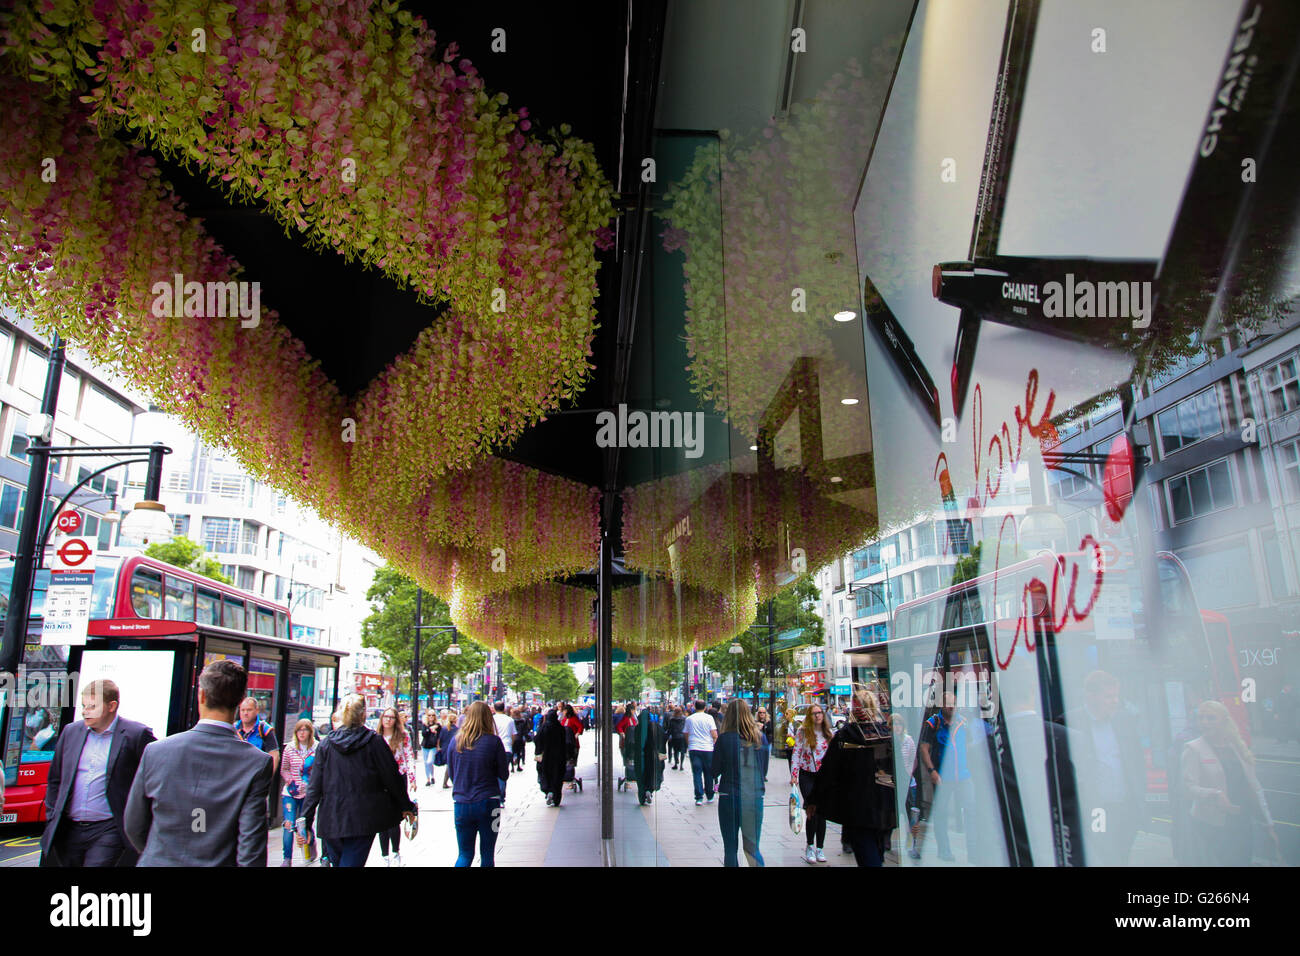 3e00a8c7186 House Of Fraser And Display Stock Photos   House Of Fraser And ...